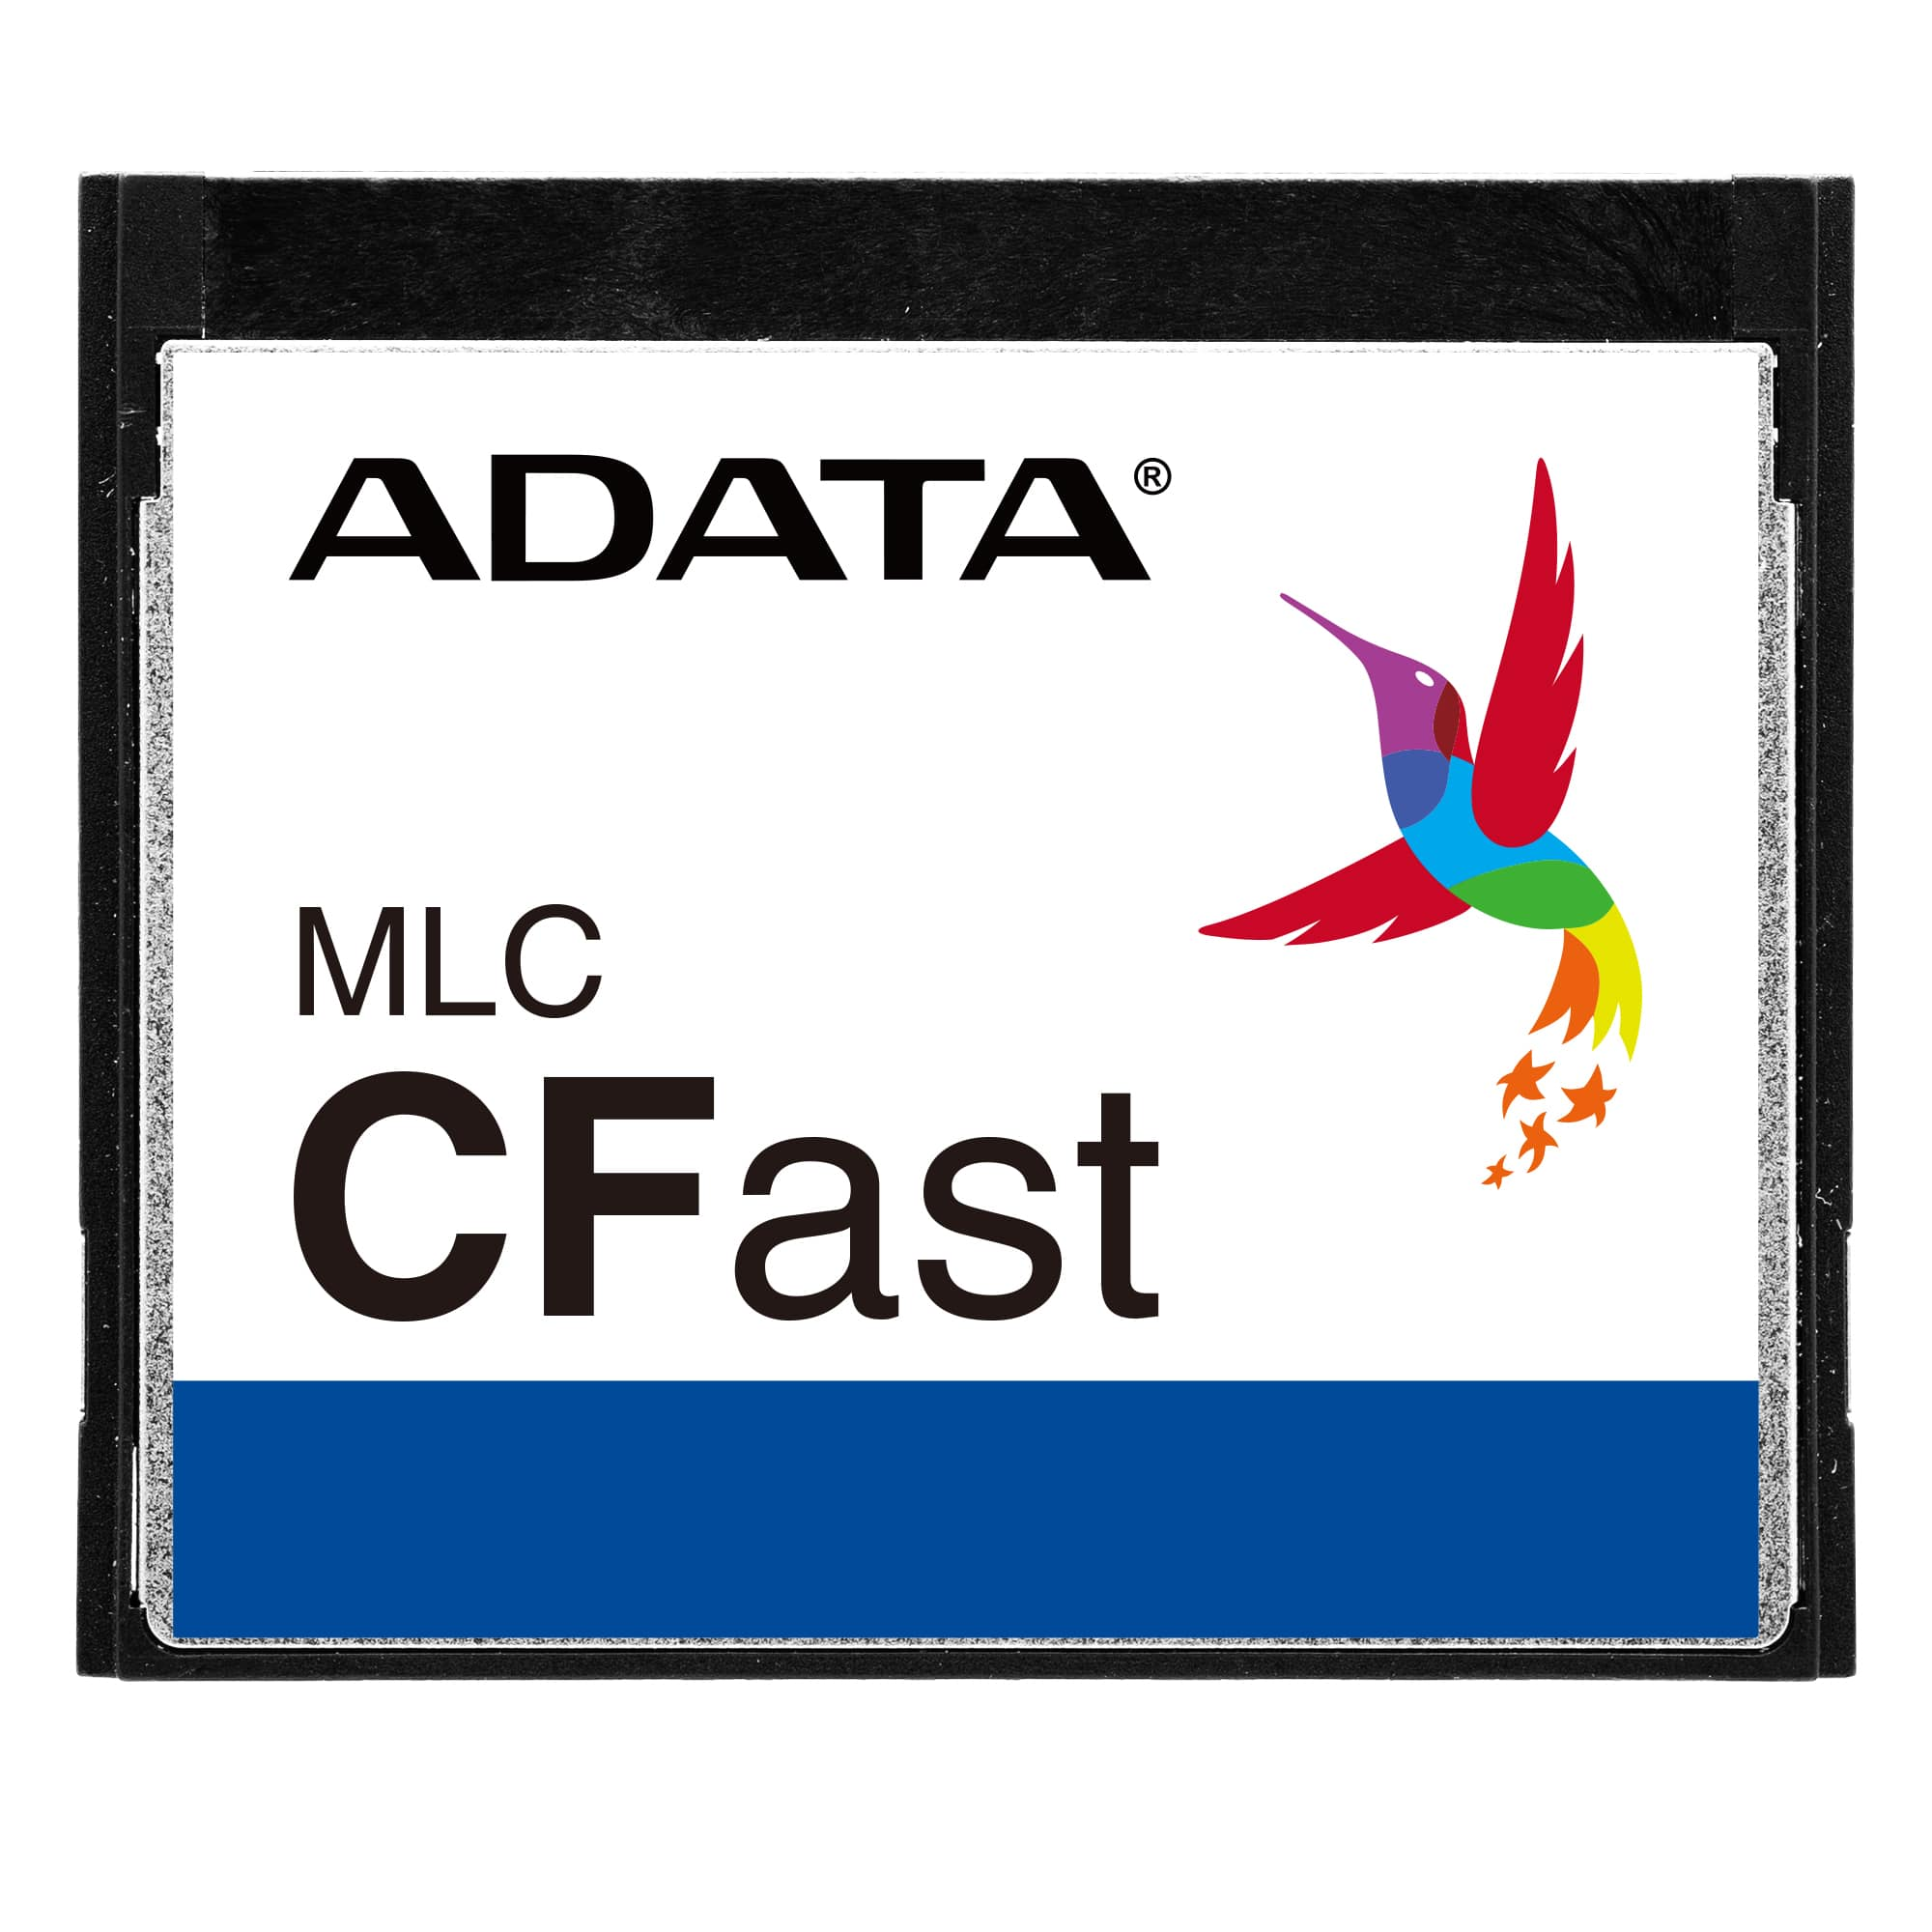 Card de Memorie A-Data ISC3E MLC CFast 16GB 0-70C